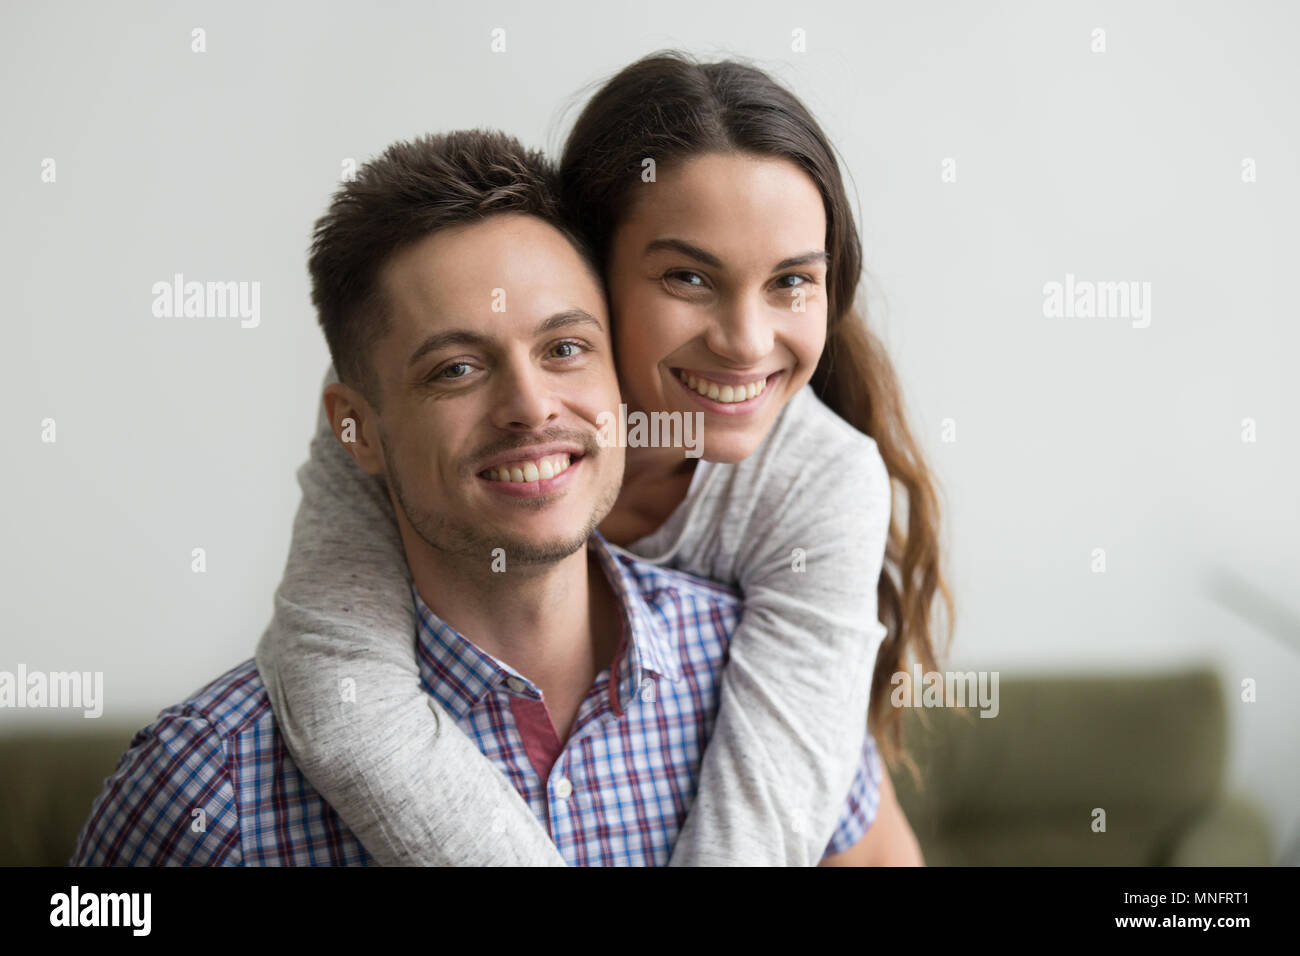 Smiling man piggyback cheerful wife looking at camera - Stock Image